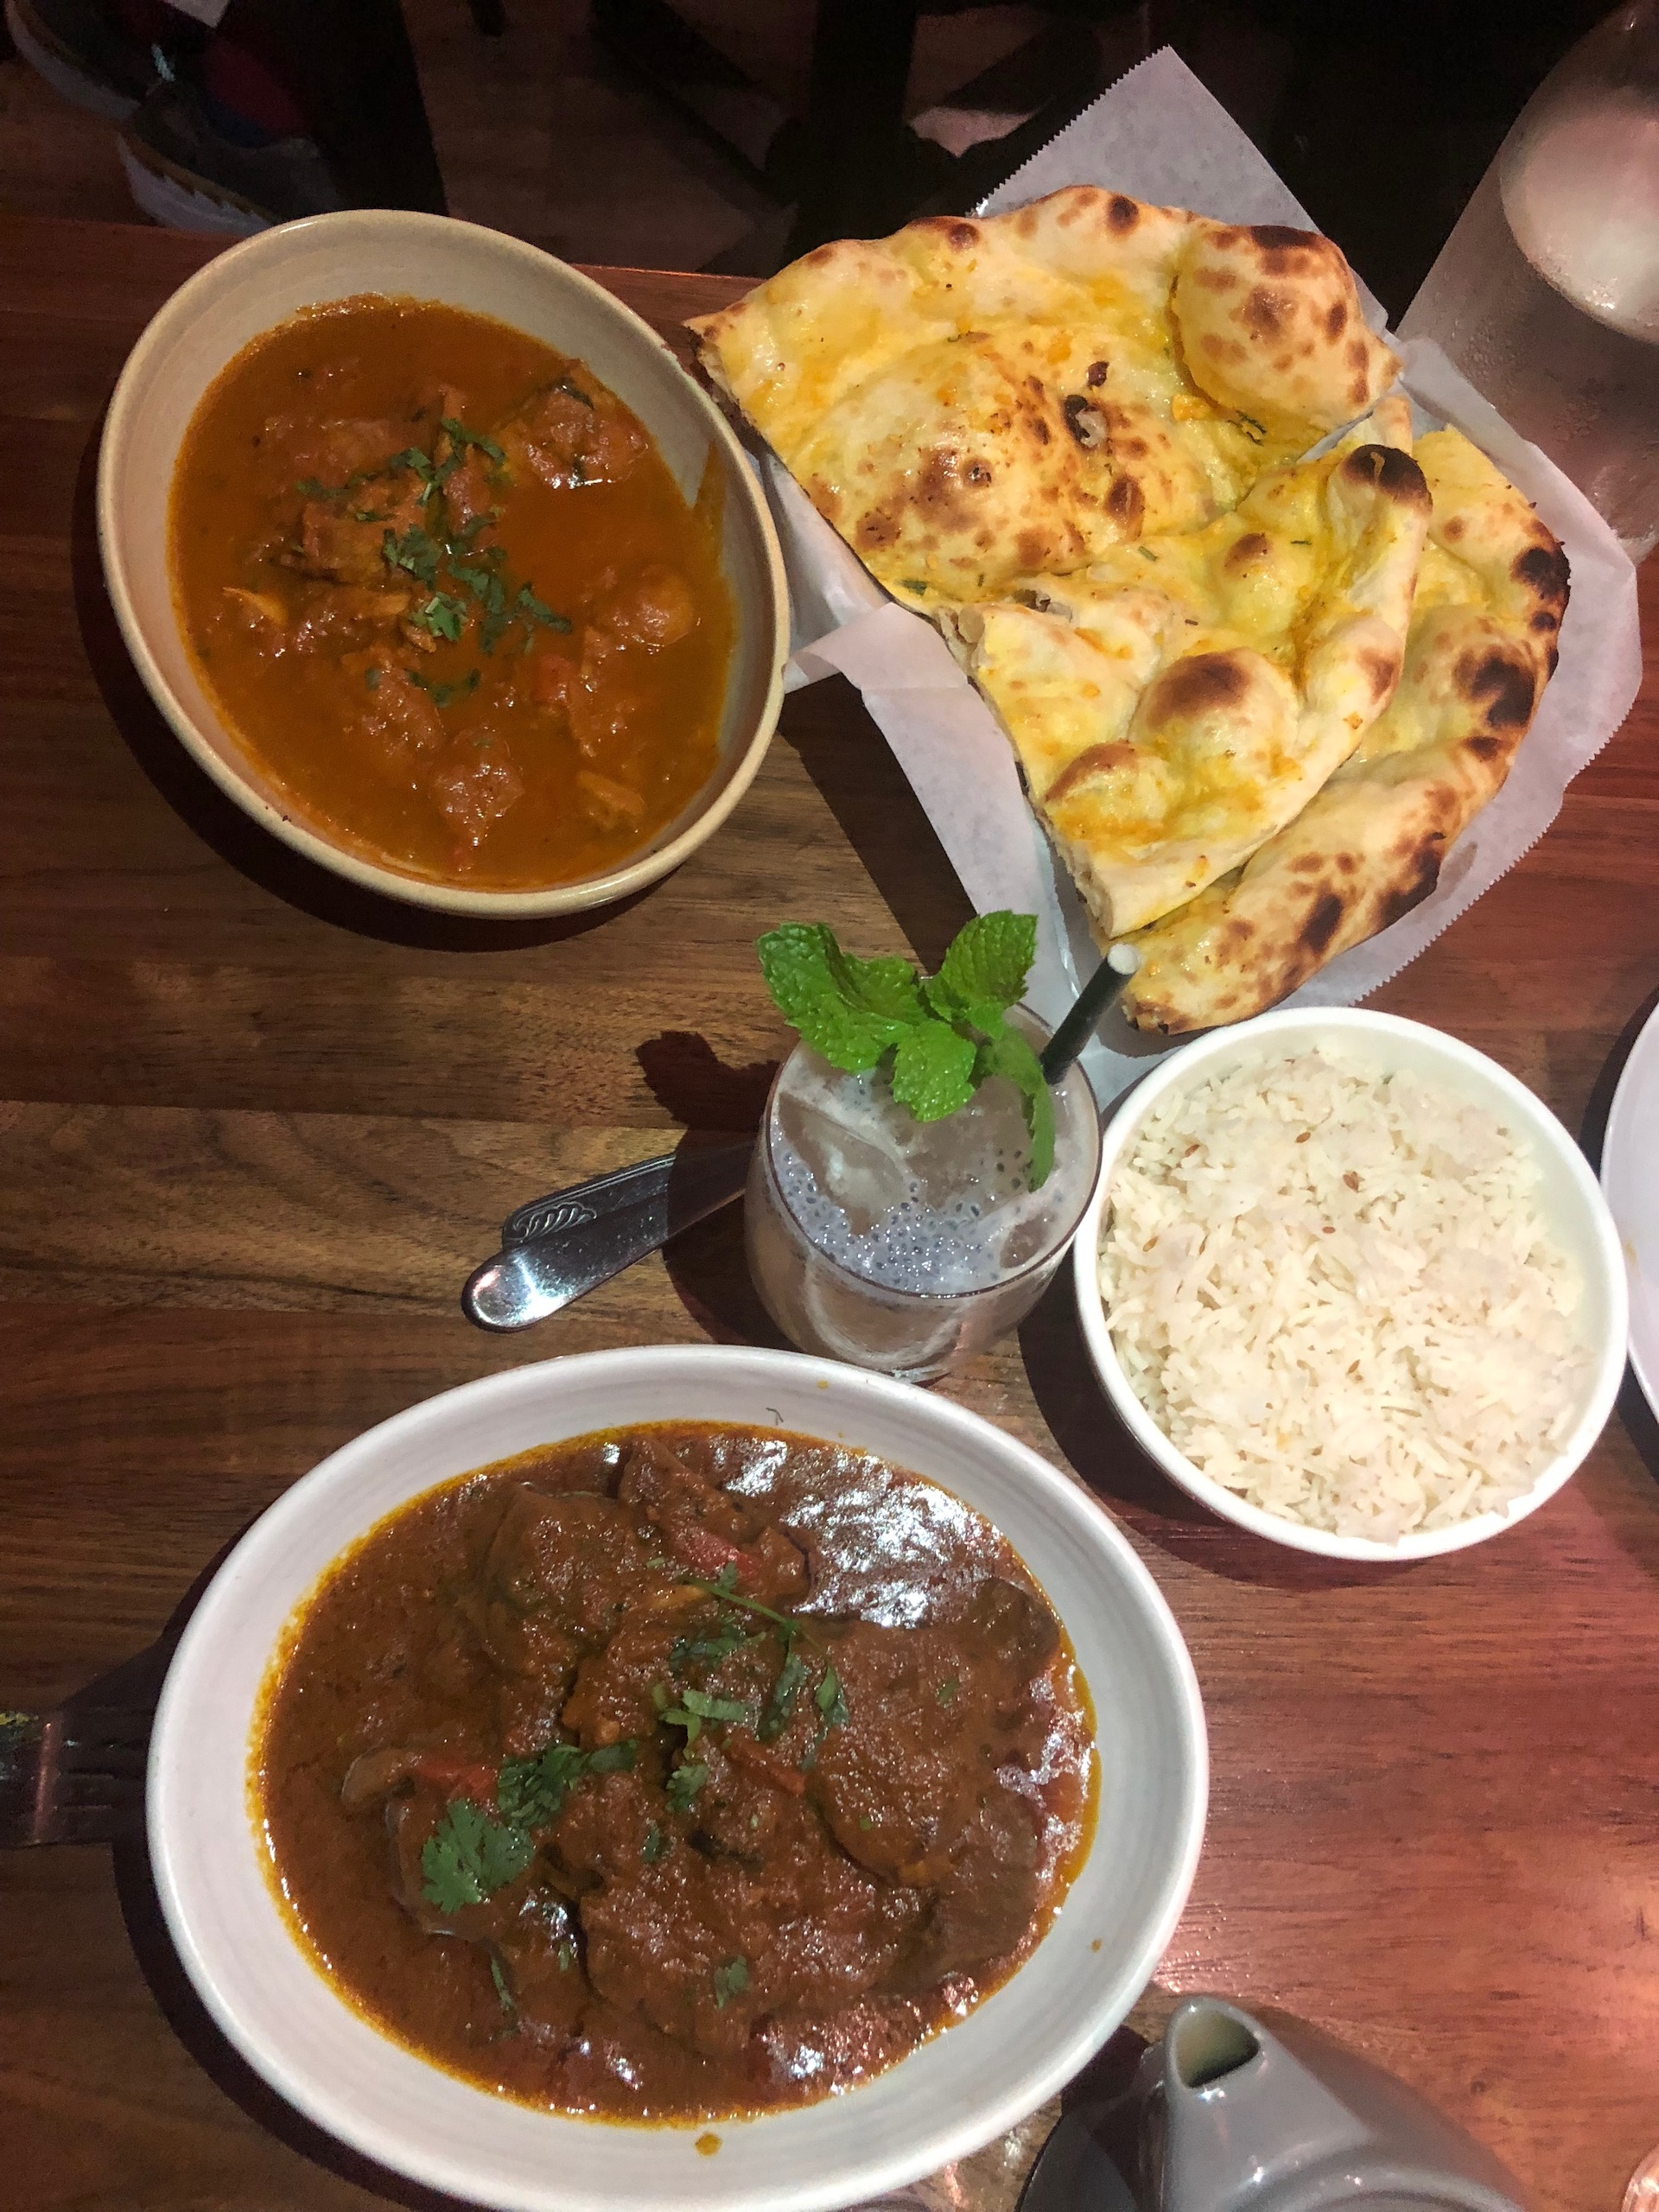 'Dhading chicken,' goat curry and garlic naan at Dancing Yak